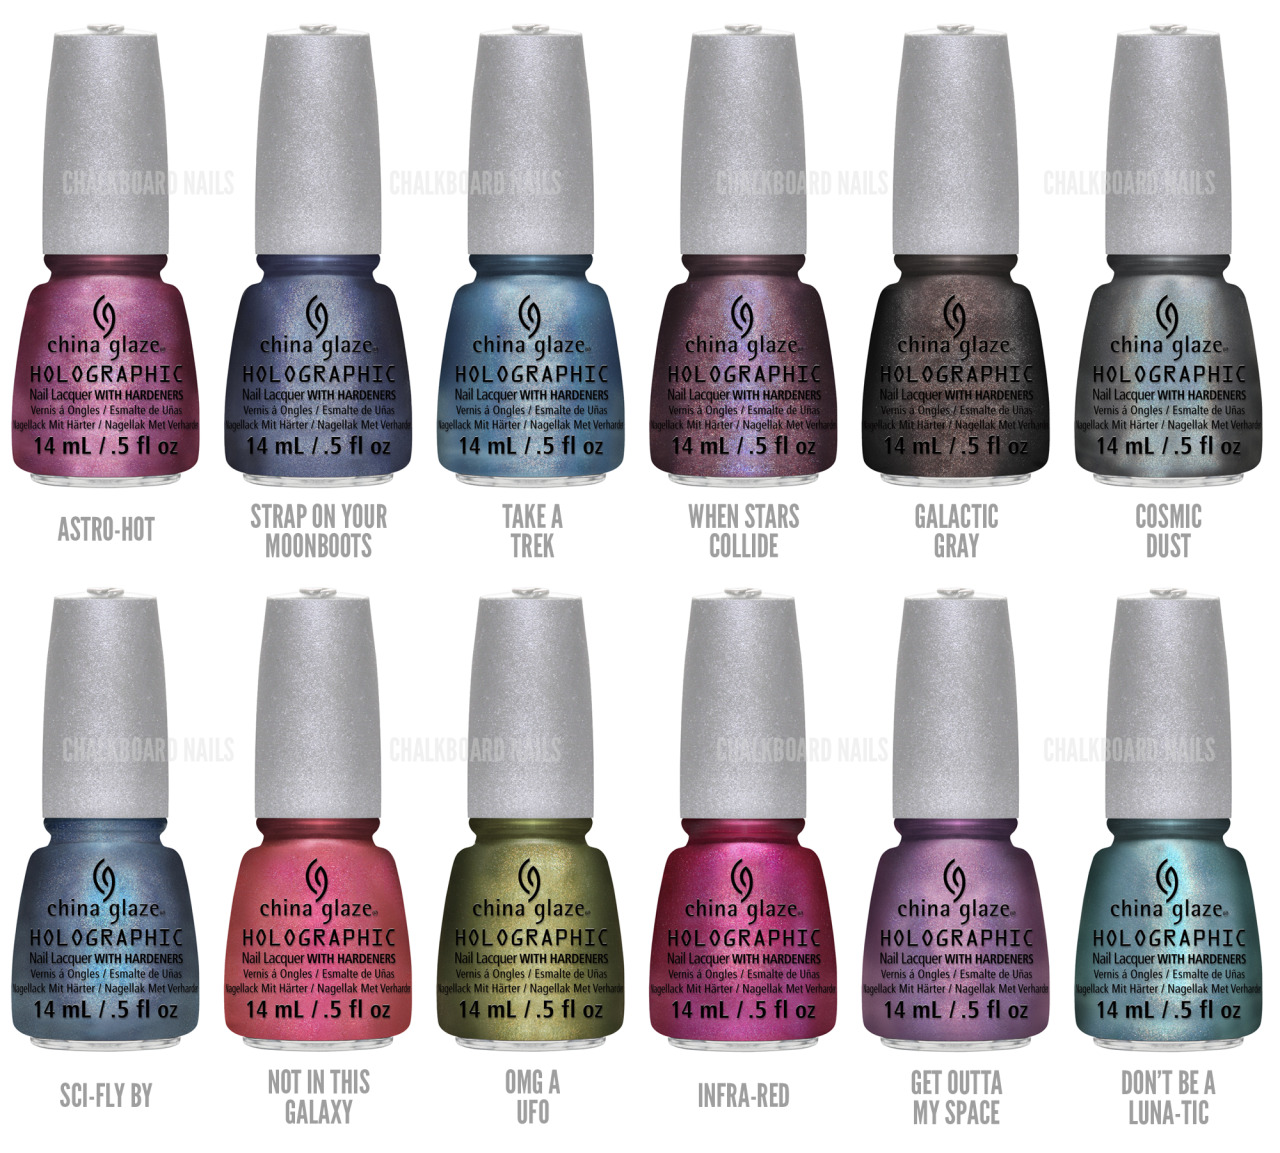 China Glaze Introduces 12 Illuminating Holographic Lacquers with Hologlam Fueled by the success of 2007's OMG Collection and back by popular demand, China Glaze Hologlam uses reflective, holographic particles to capture light and transform nails into amazing, ever-changing visual effects. With a strong linear finish whether indoor or shining bright in the sun, China Glaze Hologlam bends and changes, creating an illuminated three-dimensional, traveling color effect across the nail.